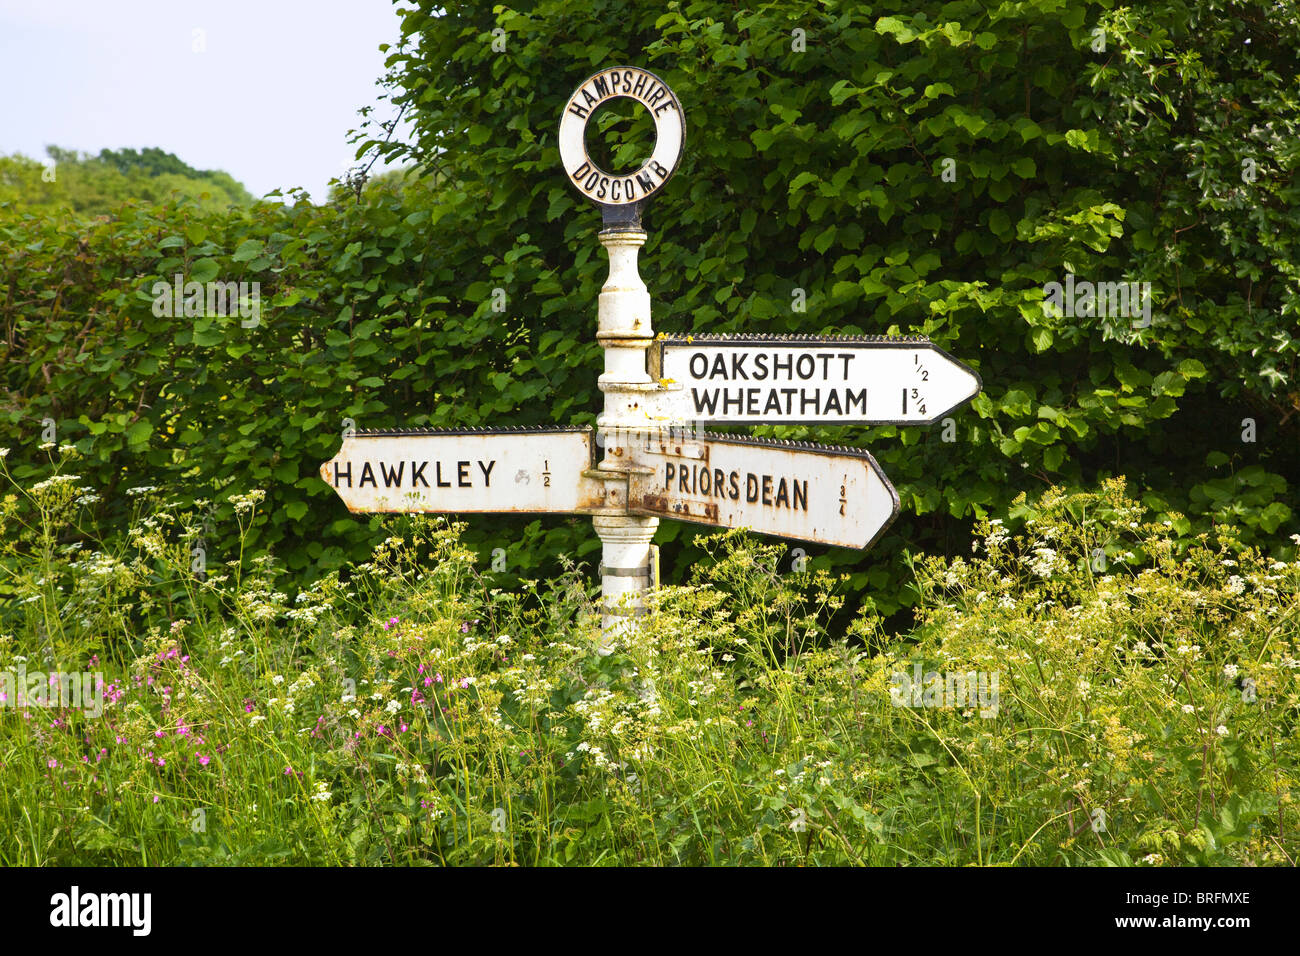 A signpost among wild flowers in the English countryside in summer. Hampshire UK. - Stock Image